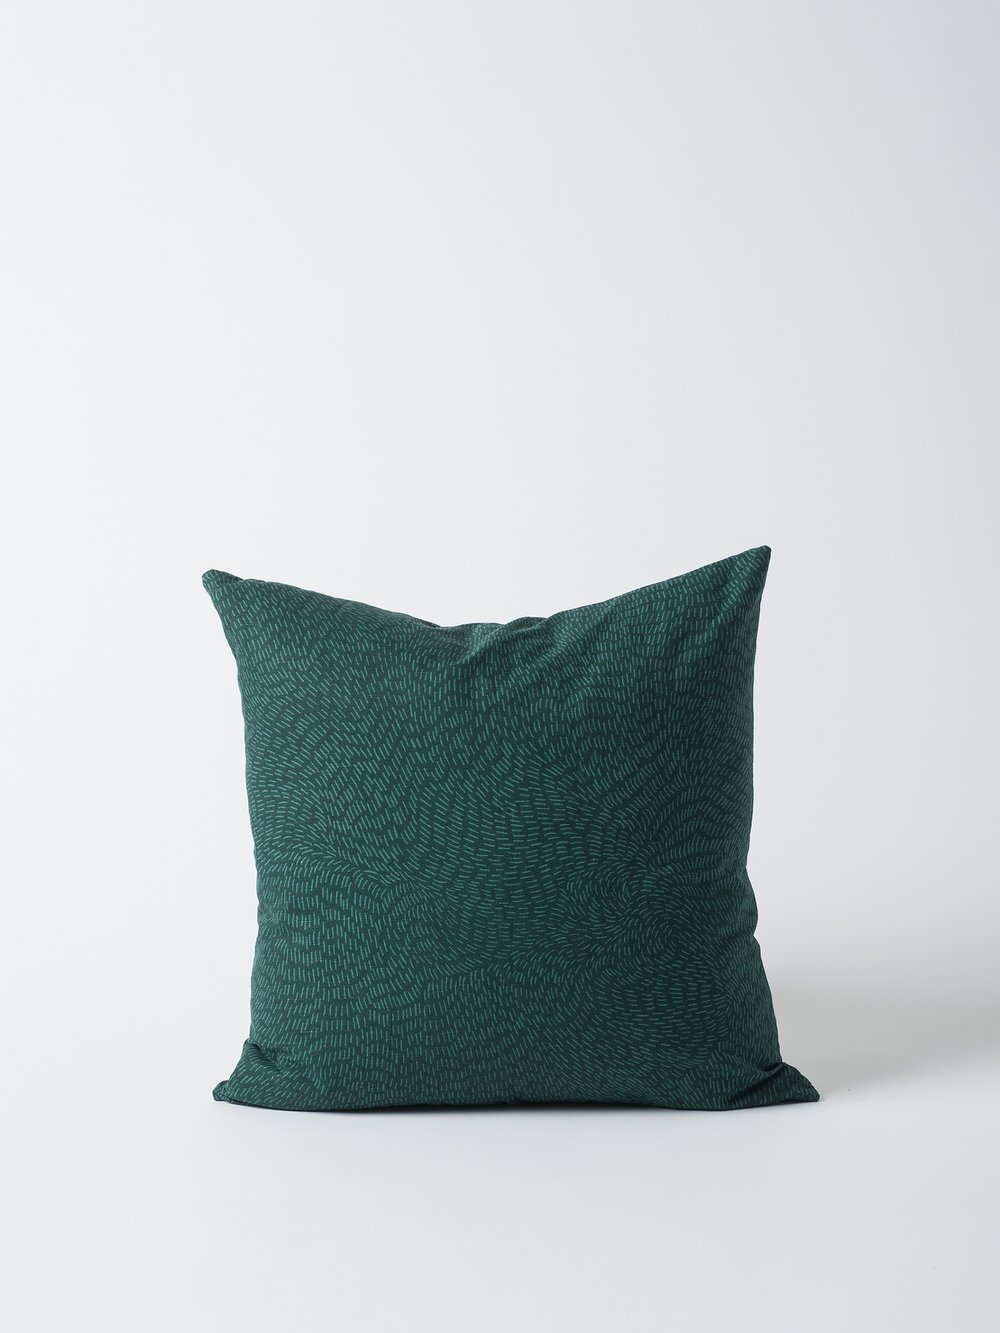 Sway Linen Cushion Cover $49.90